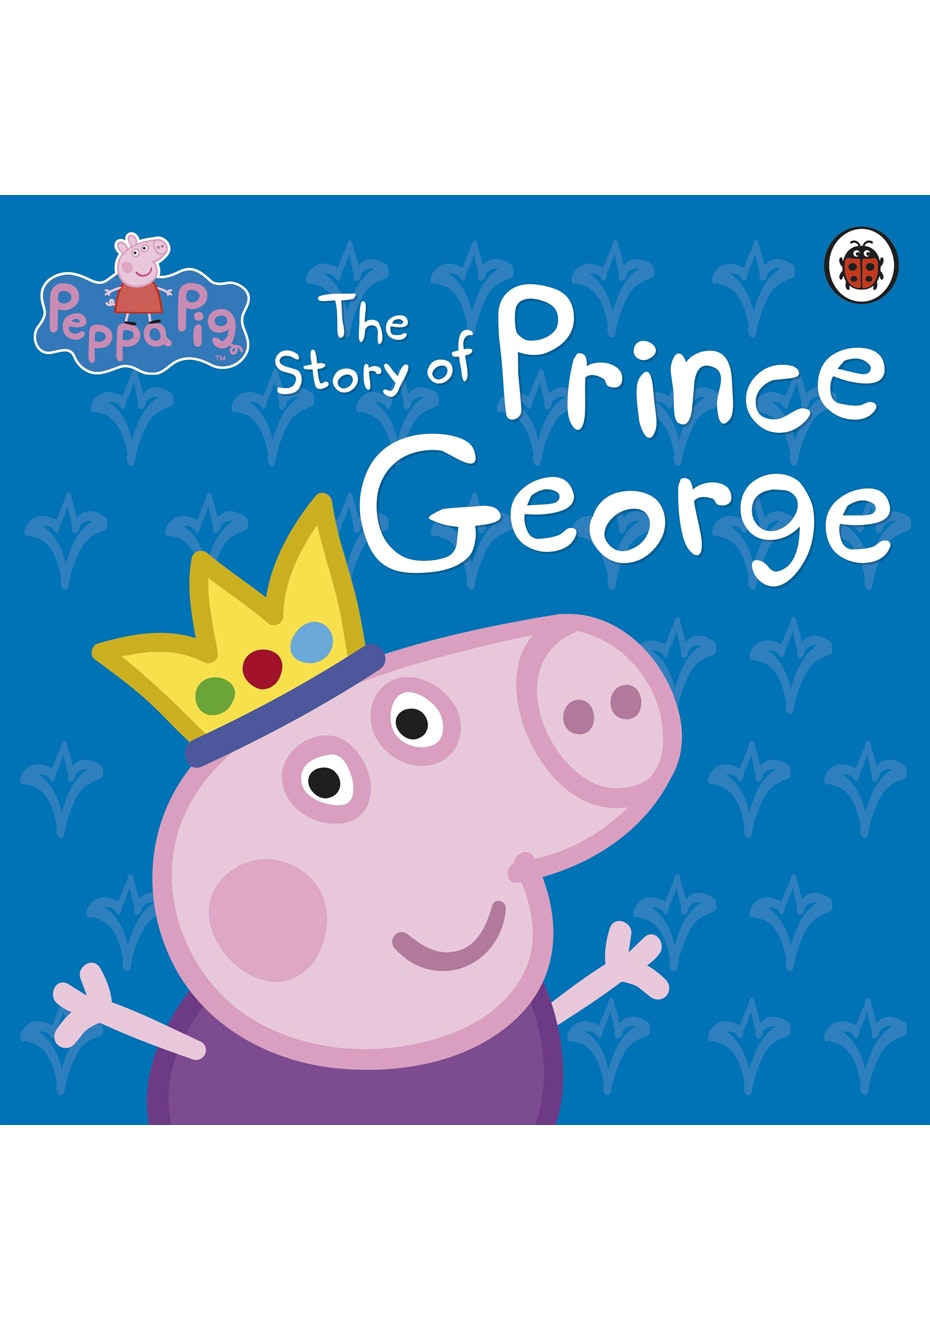 Peppa Pig: The Story of Prince George, By Ladybird